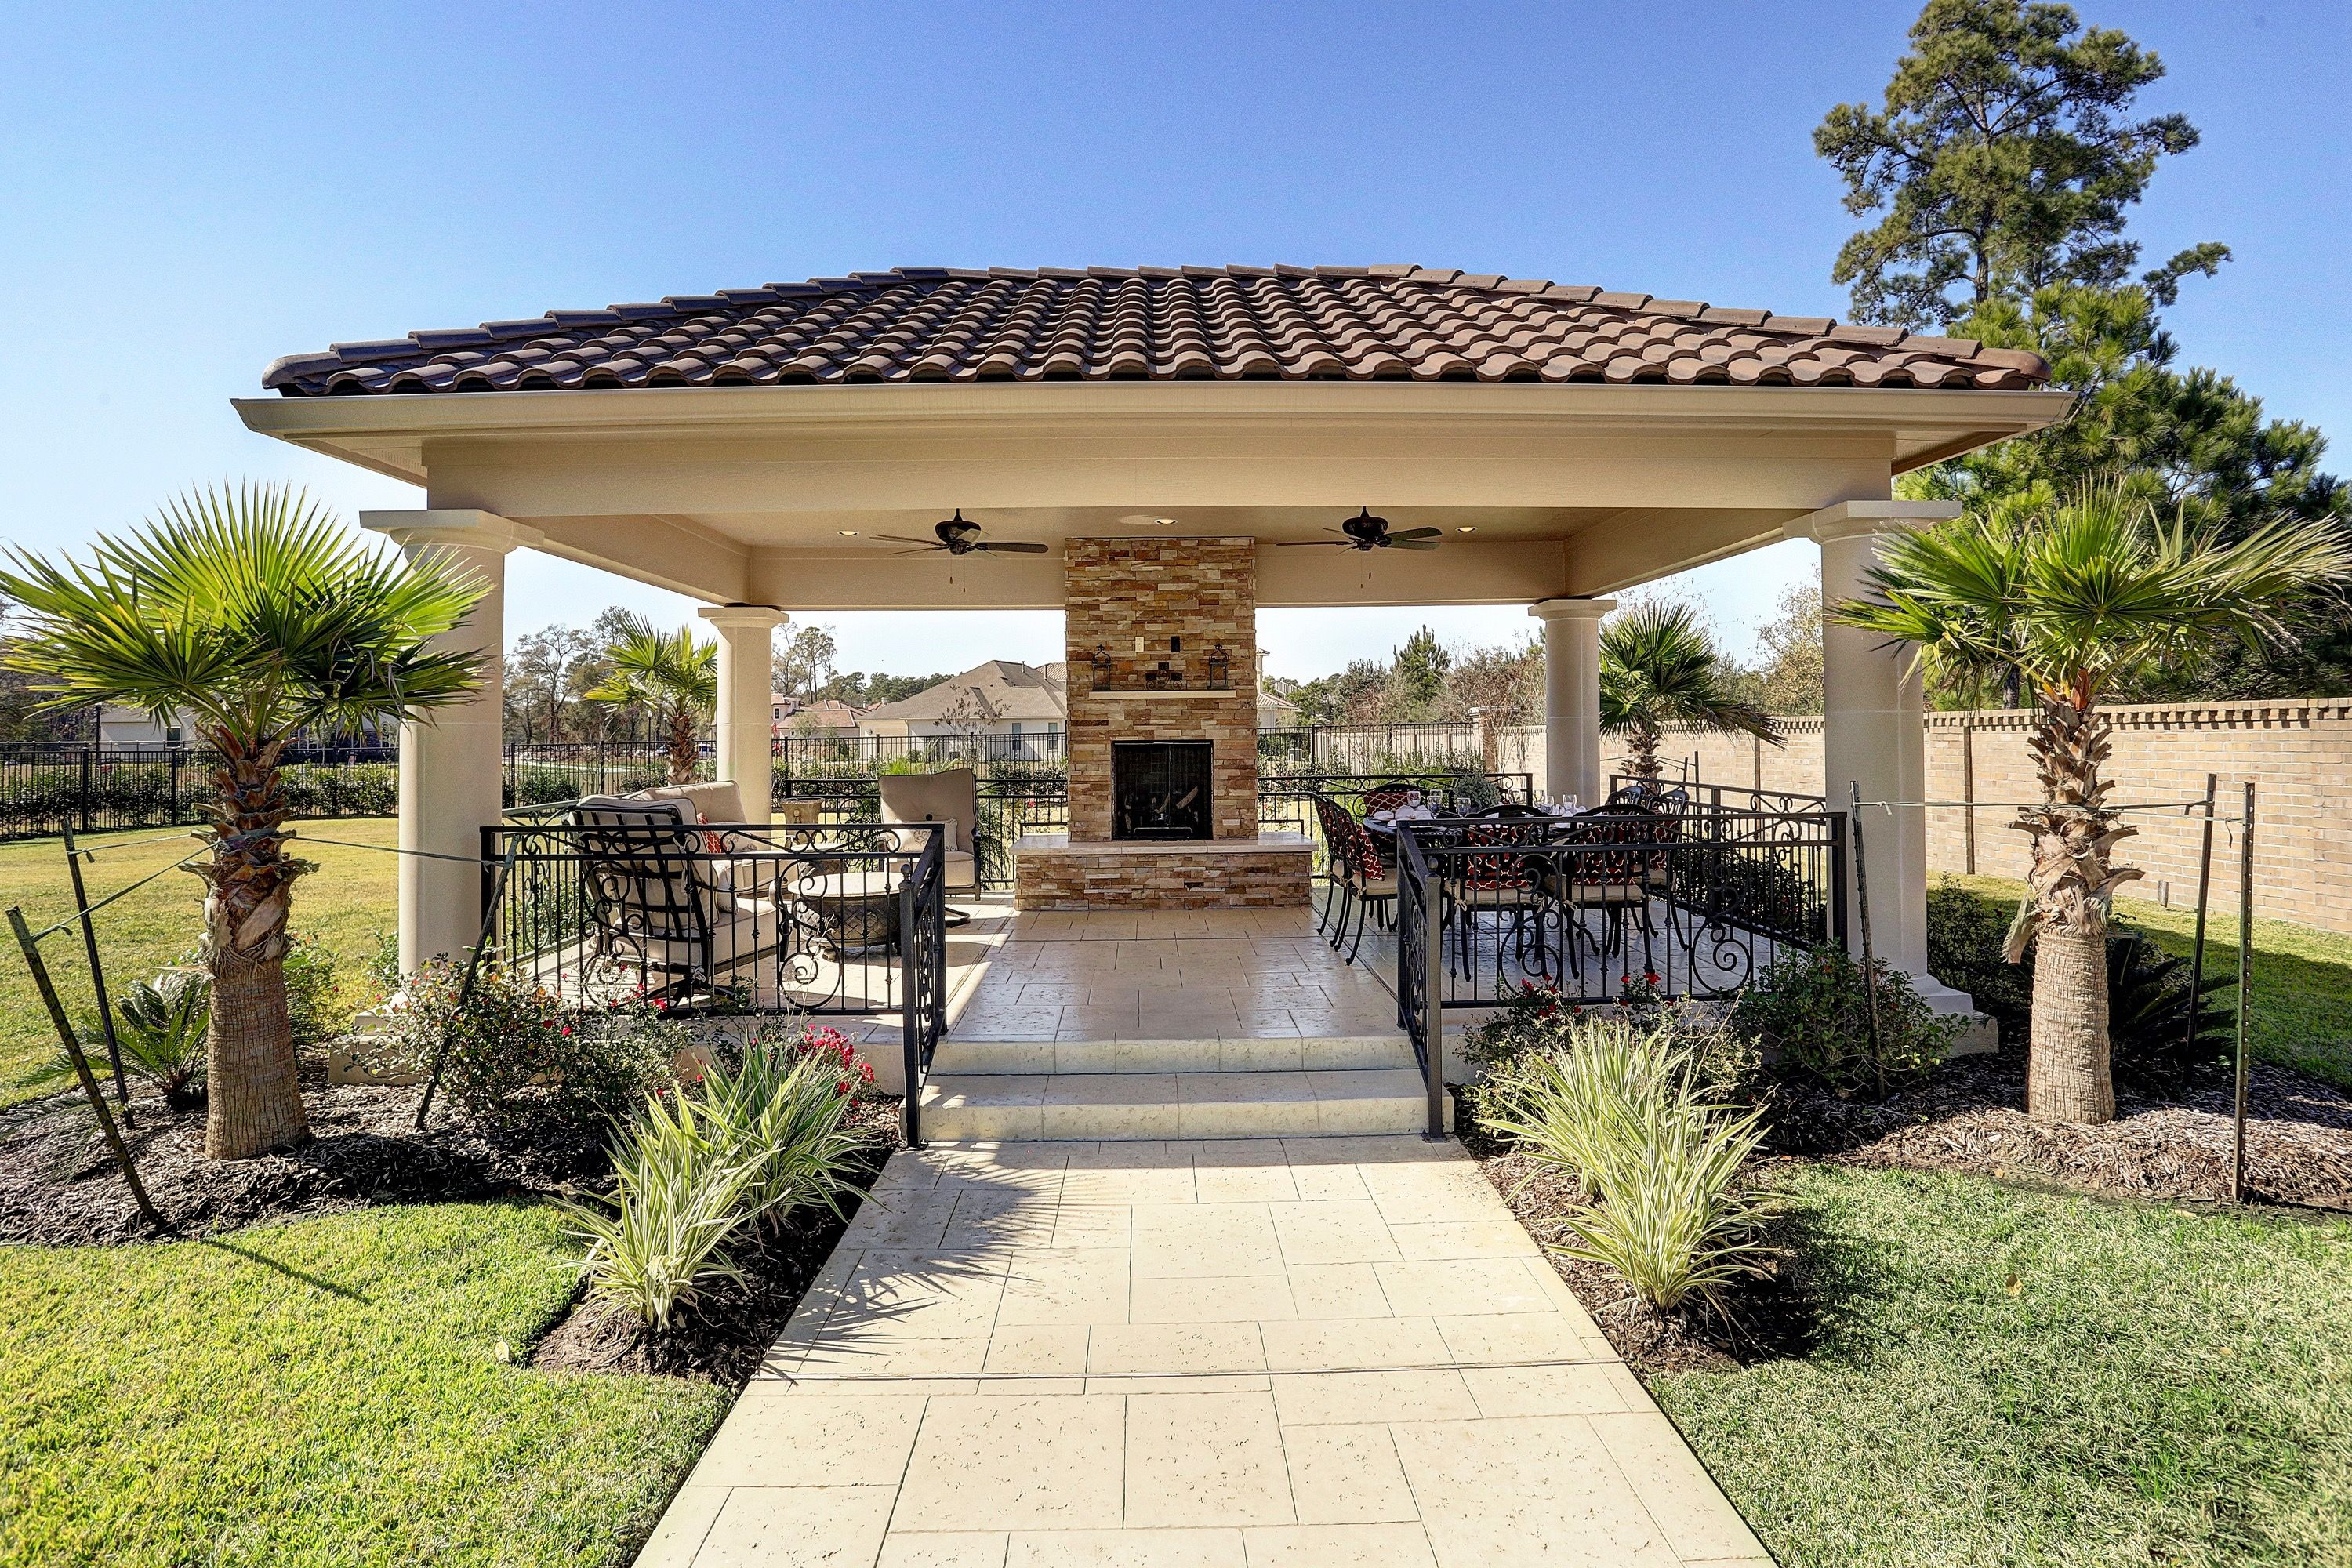 Free Standing Patio Outdoor Living Wrought Iron Railing Outdoor Fireplace Adobe Tile Outdoor Kitchen Pergola Patio Design Pergola Patio